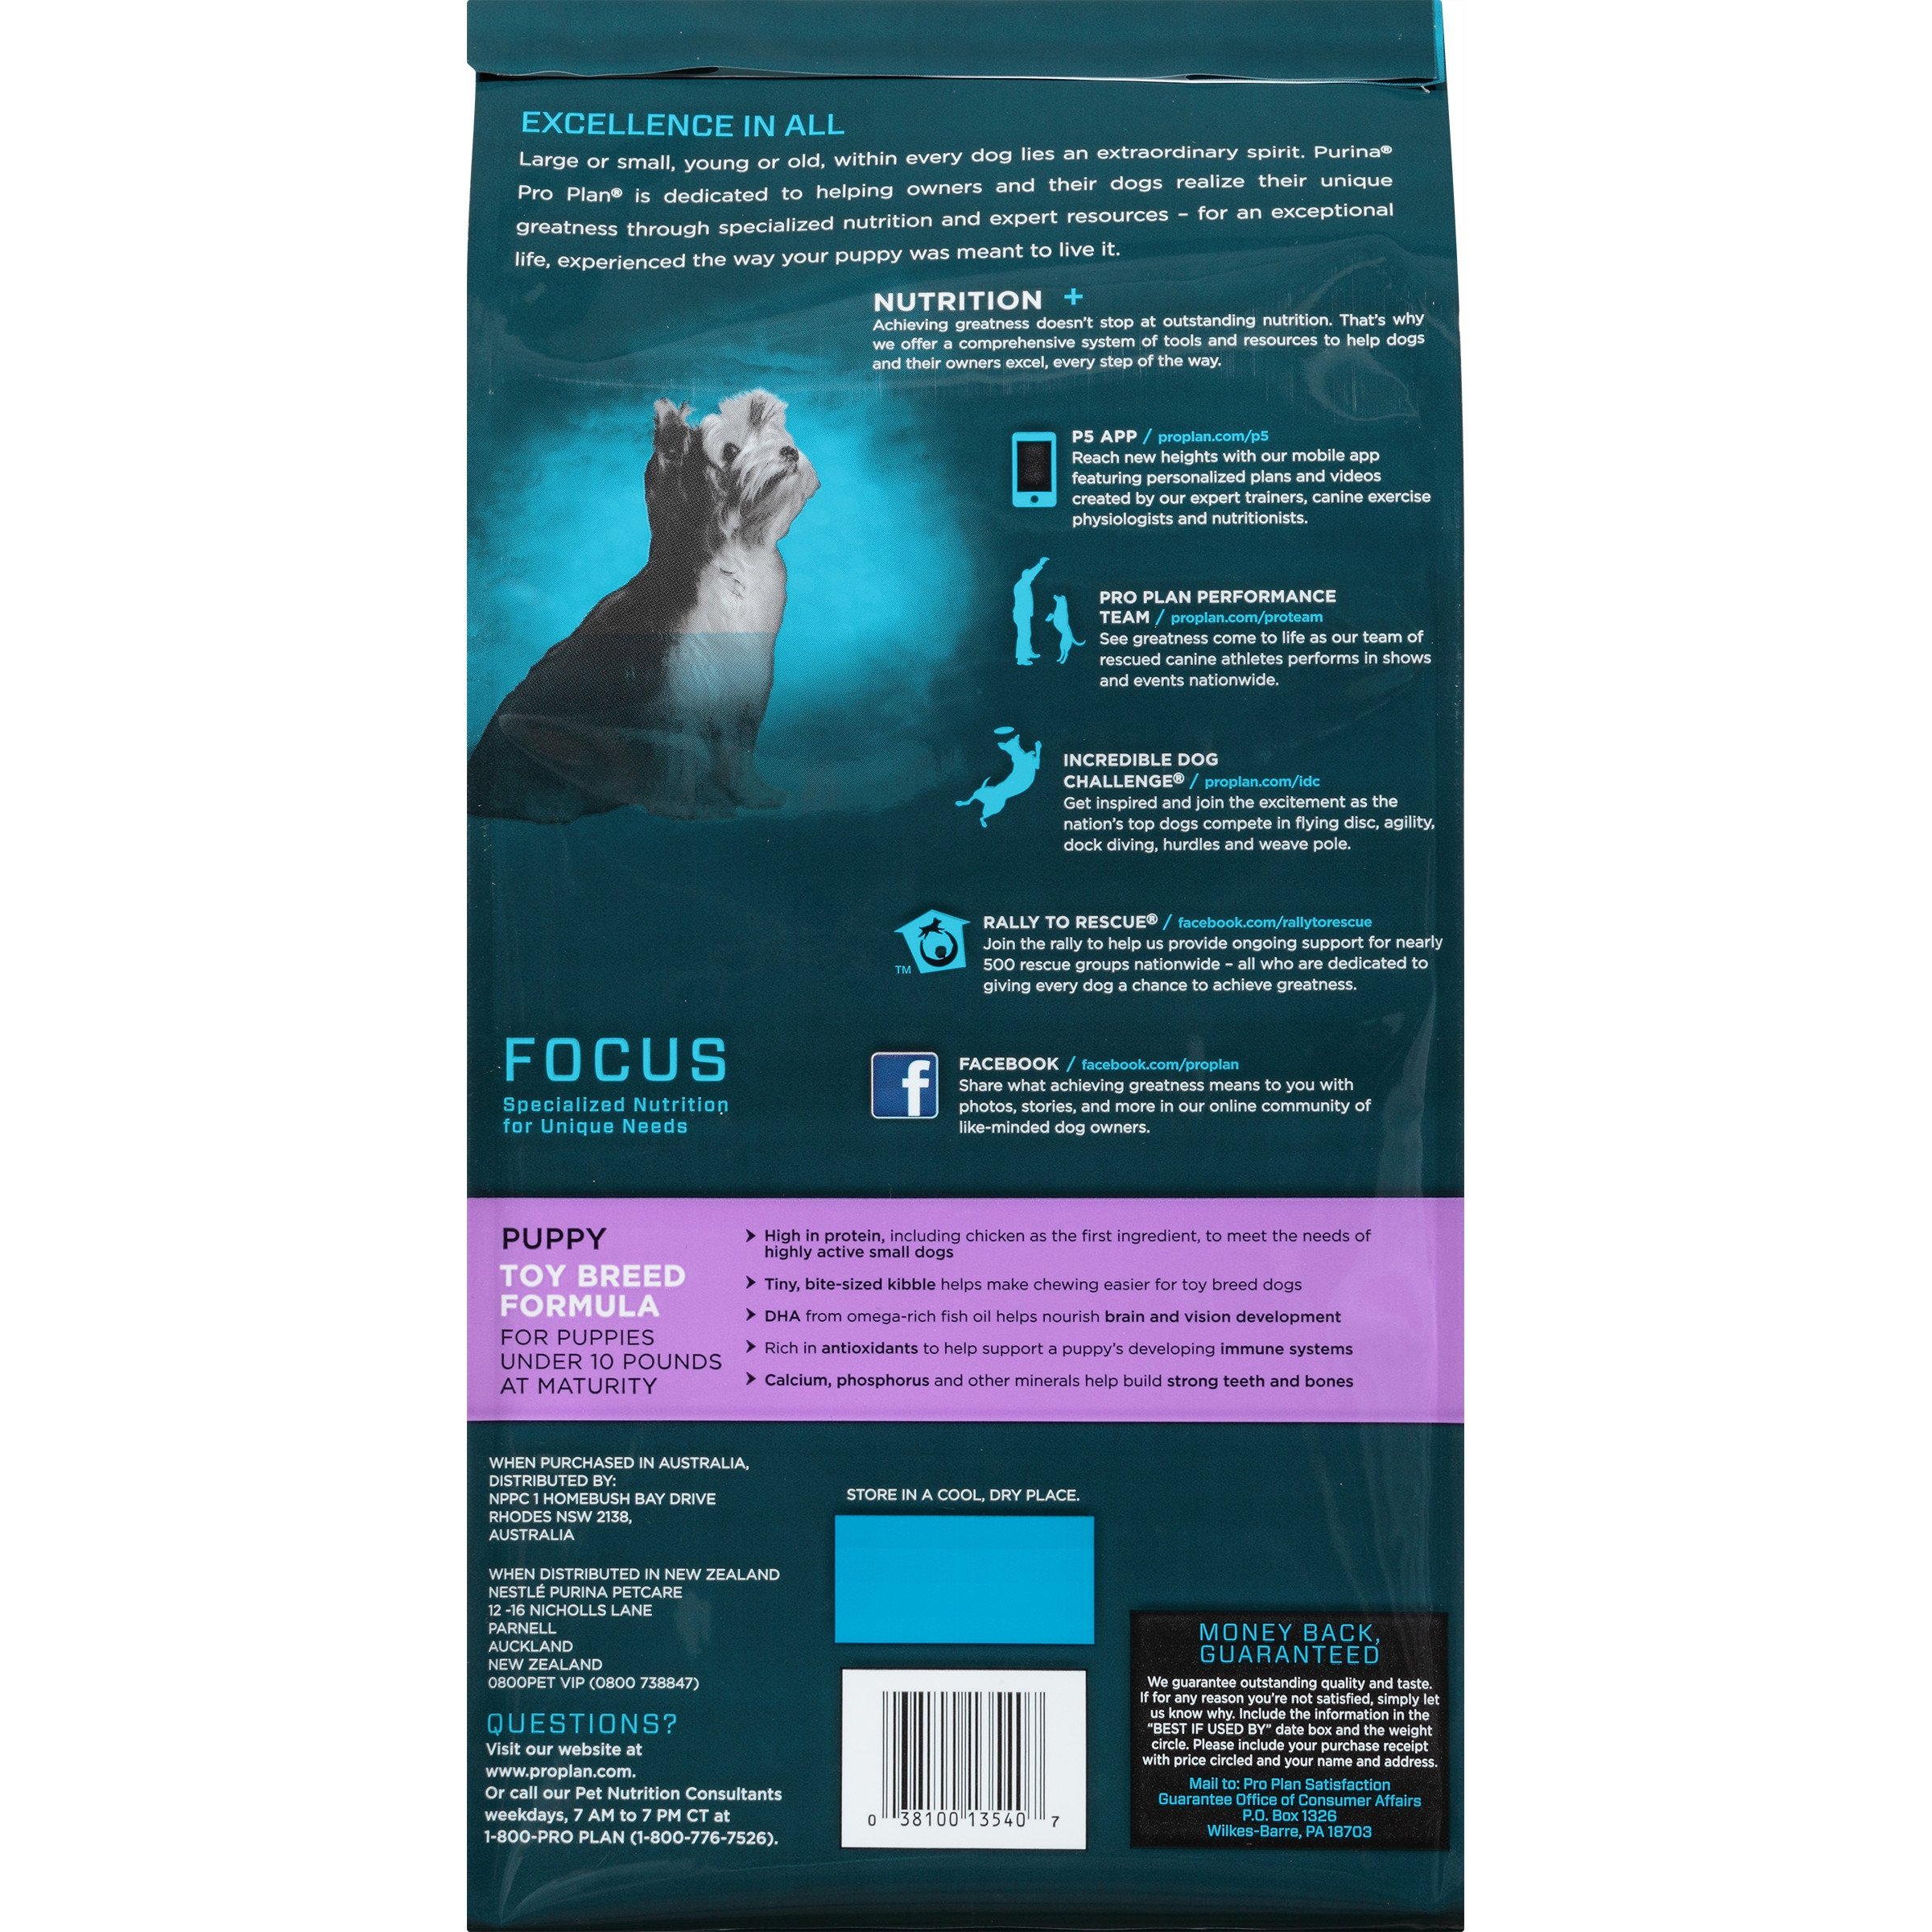 Purina Pro Plan FOCUS Puppy Toy Breed Formula Dry Dog Food - (1) 5 lb. Bag by Purina Pro Plan (Image #2)